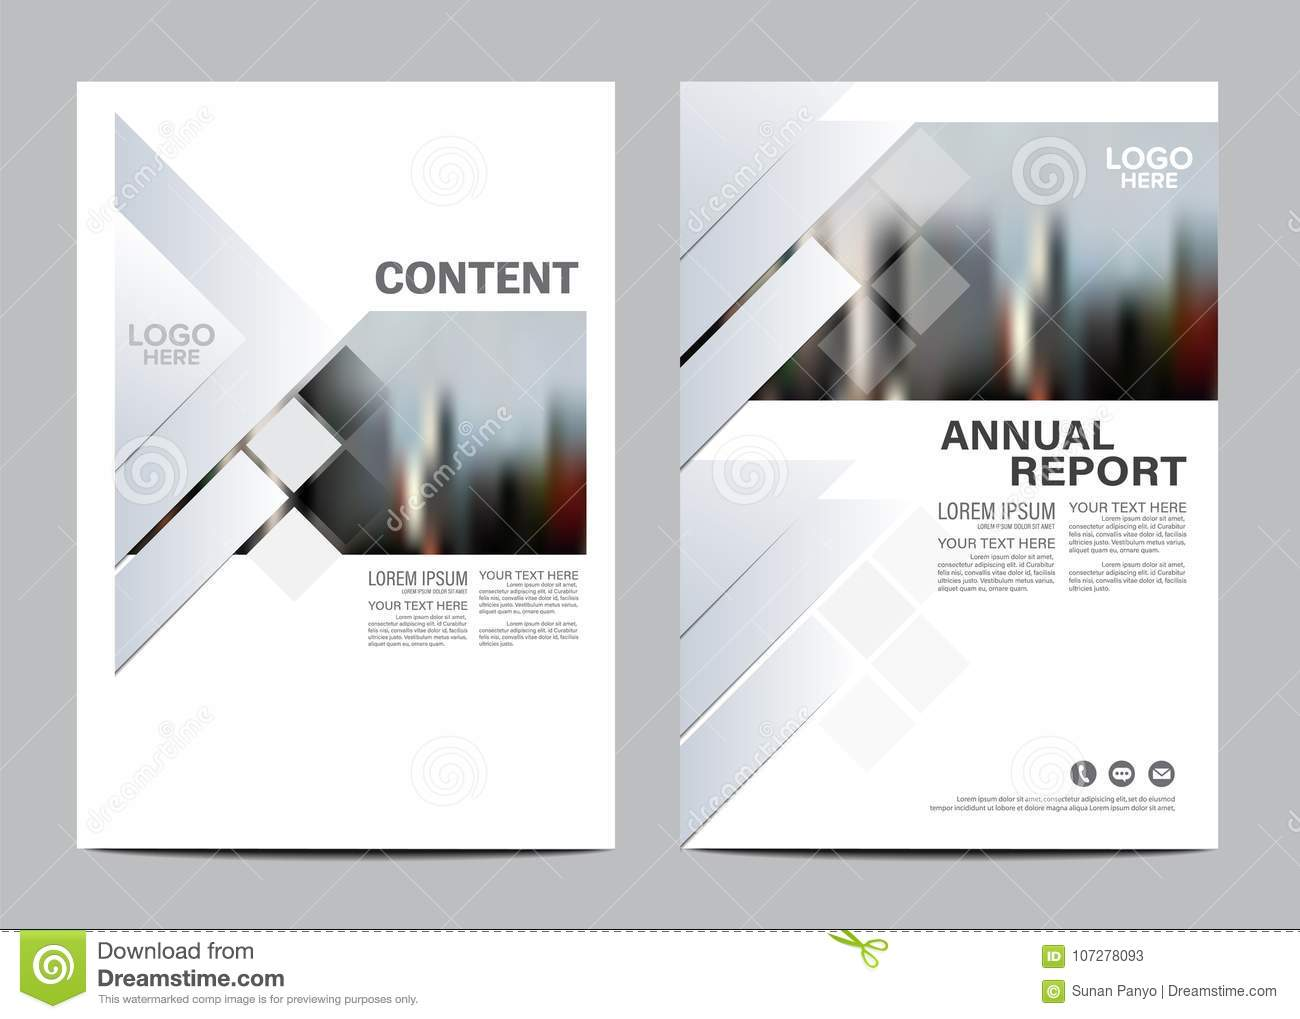 Black and white Brochure Layout design template. Annual Report Flyer Leaflet cover Presentation Modern background.